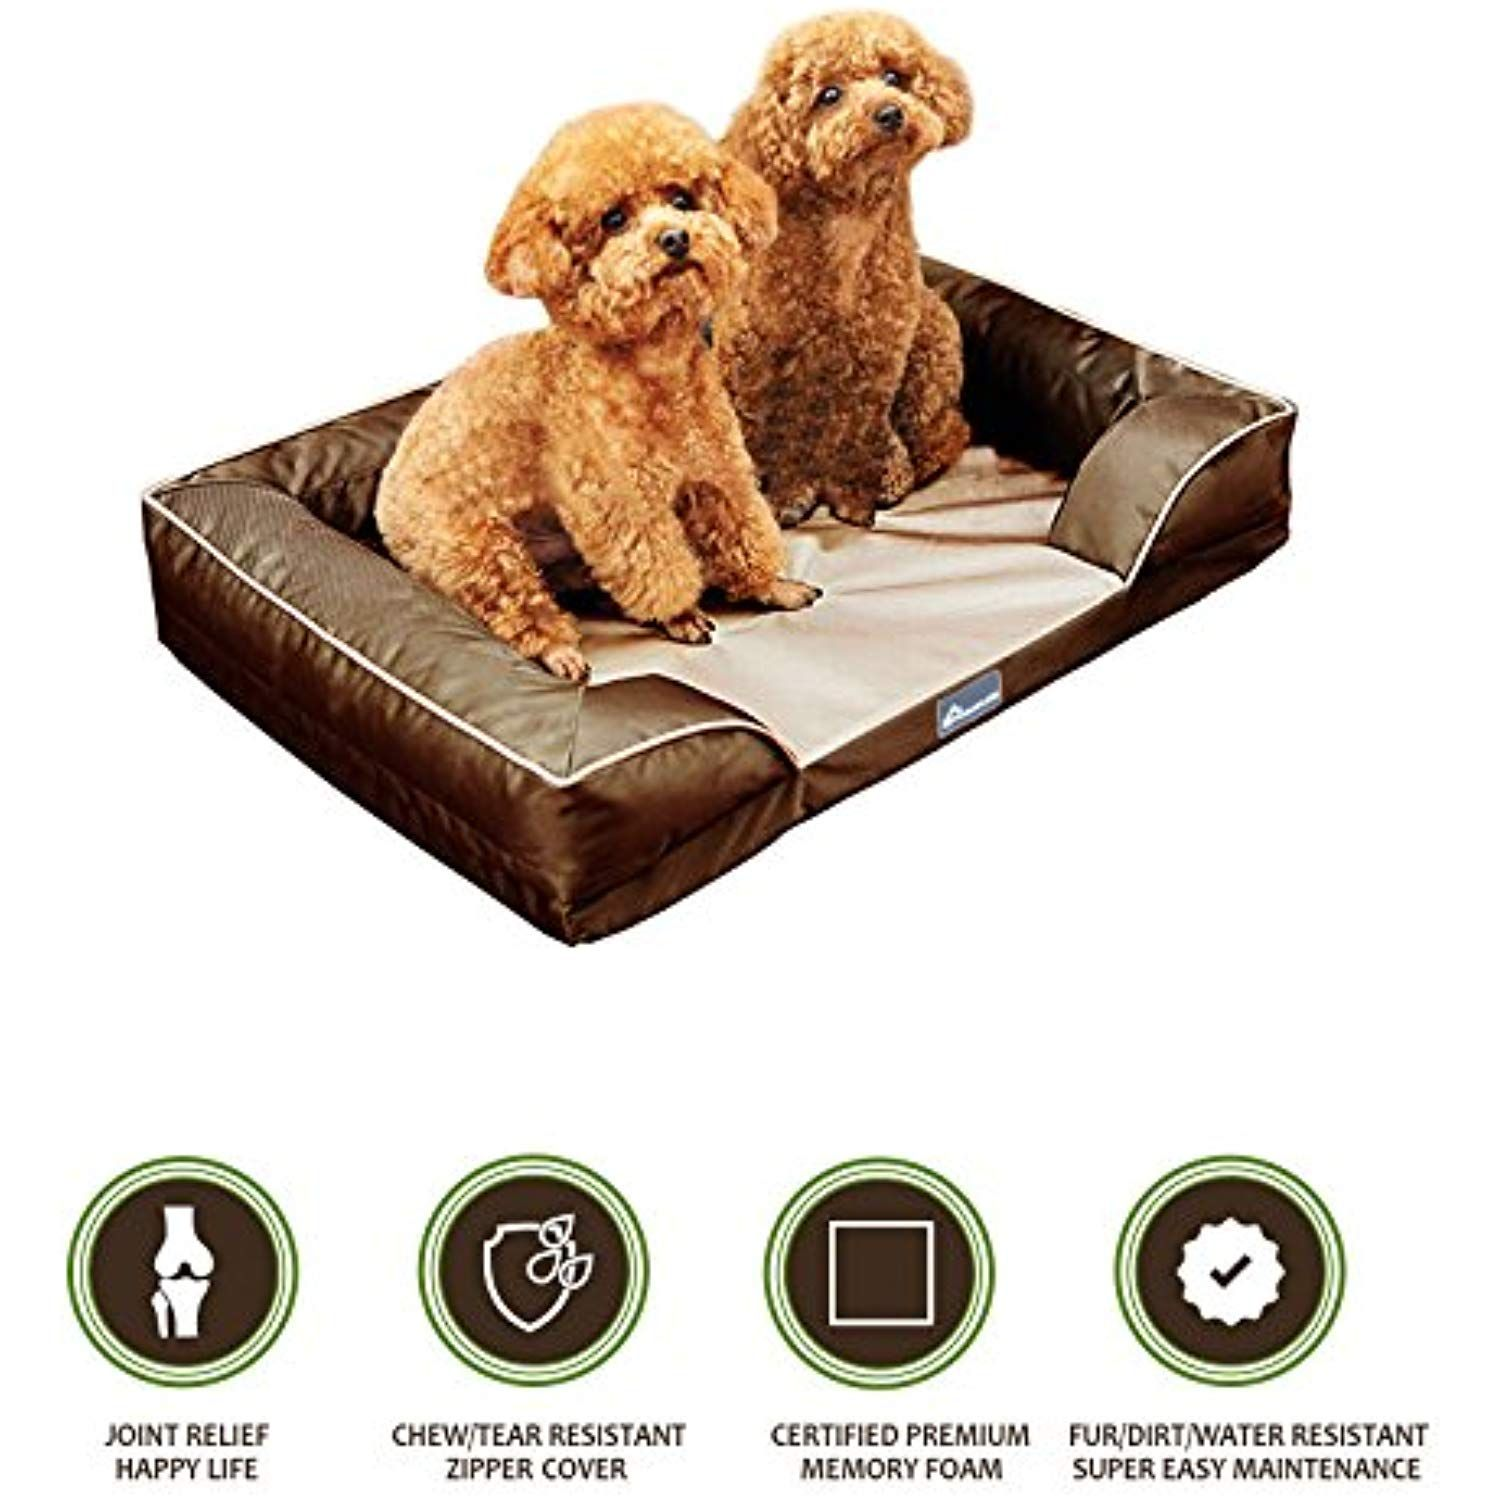 PetBed4Less Deluxe Dog Bed Sofa and Lounge w/Premium